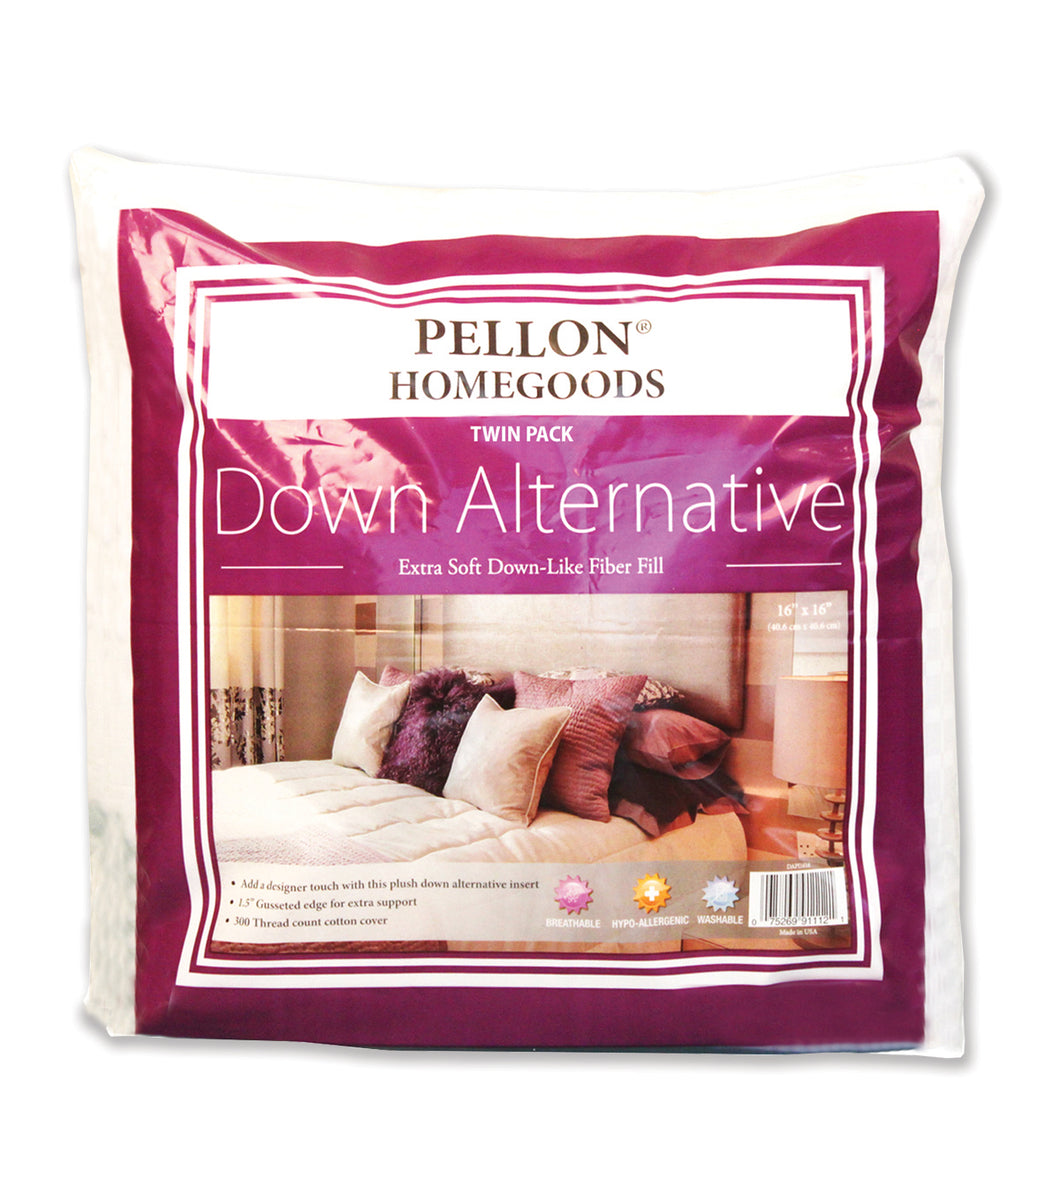 Pellon Homegoods Down Alternative Pillow Insert 16